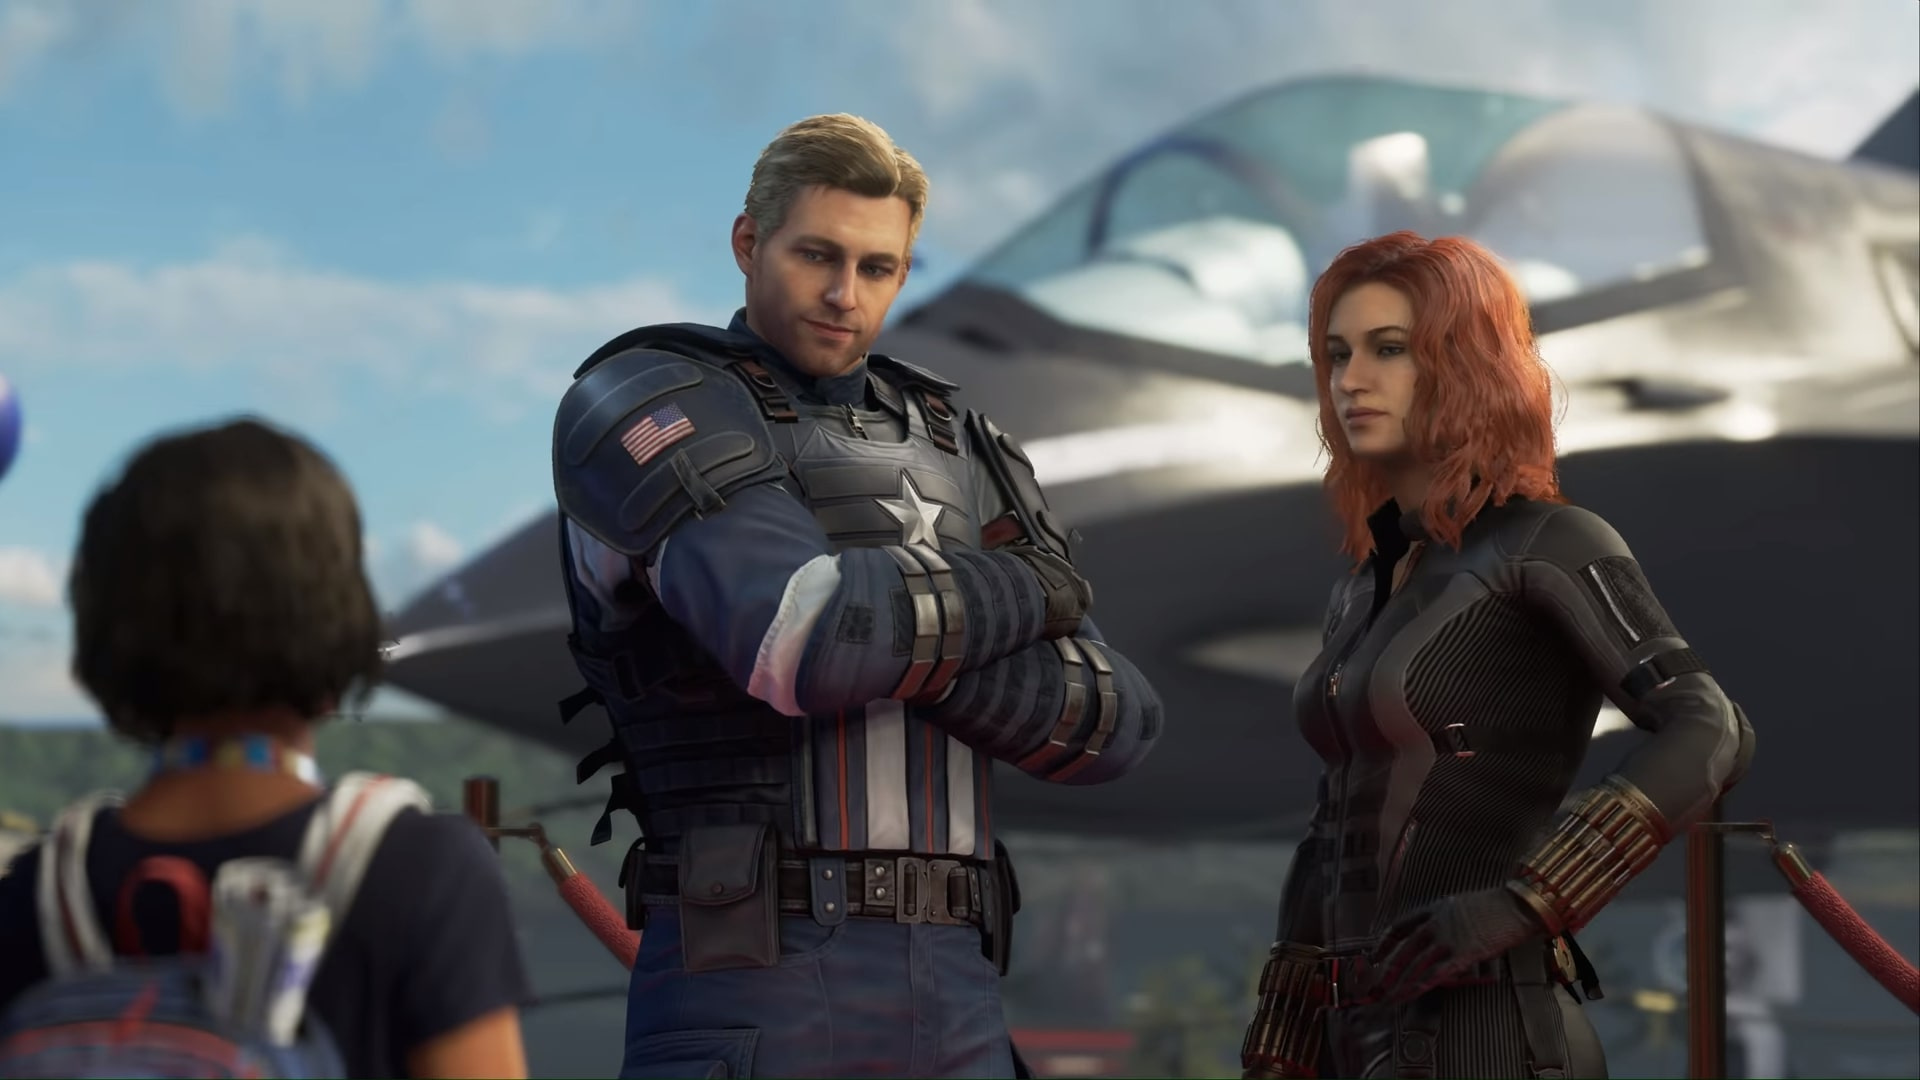 Latest 'Marvel's Avengers' trailer shows how gameplay works